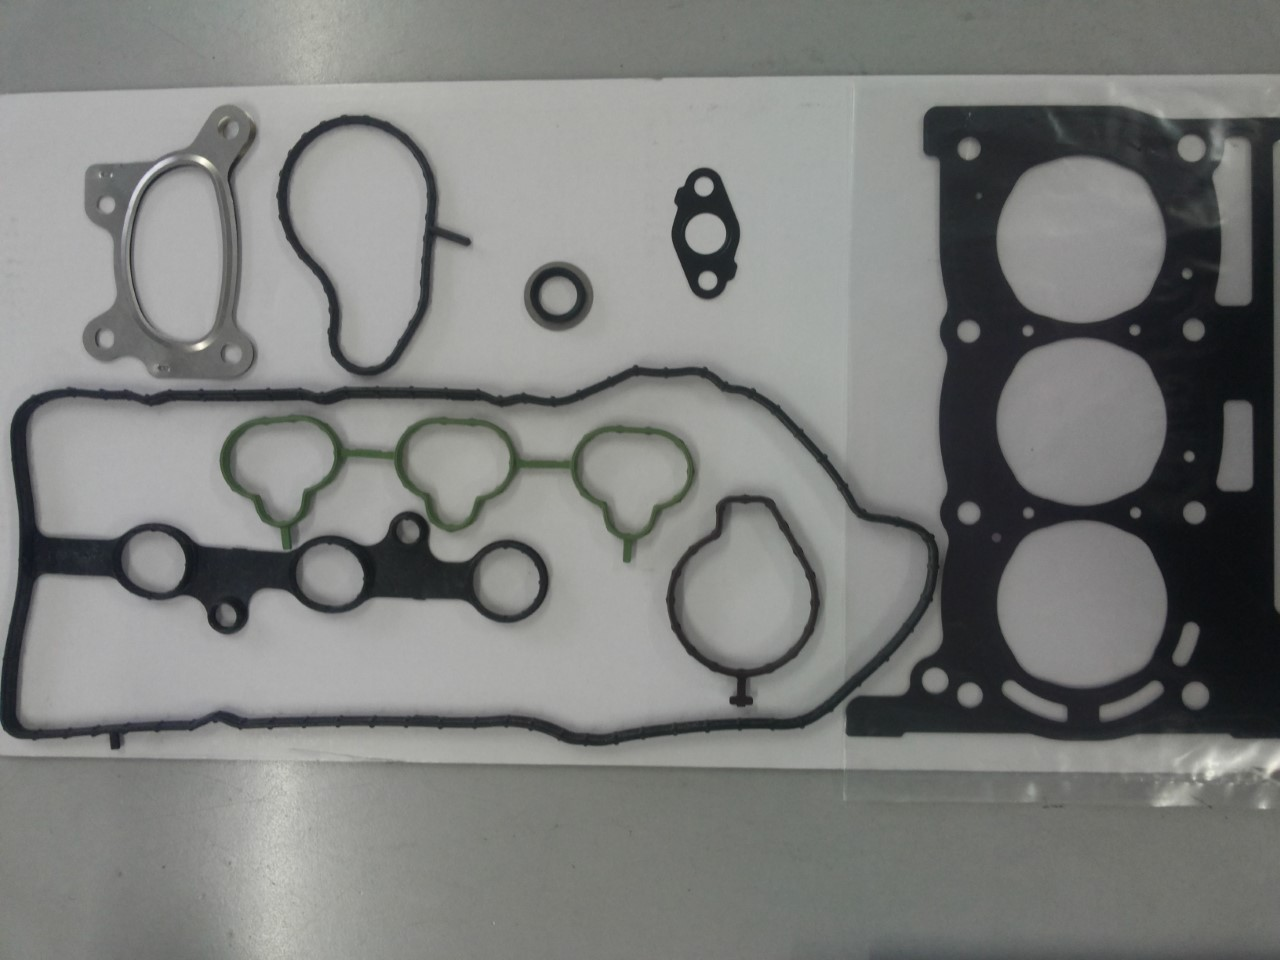 medium resolution of  1 3 variant of engine the 1 0 engine as stated in the brochure as a 1kr ve engine will this 1kr ve engine gasket have some surprise differences when